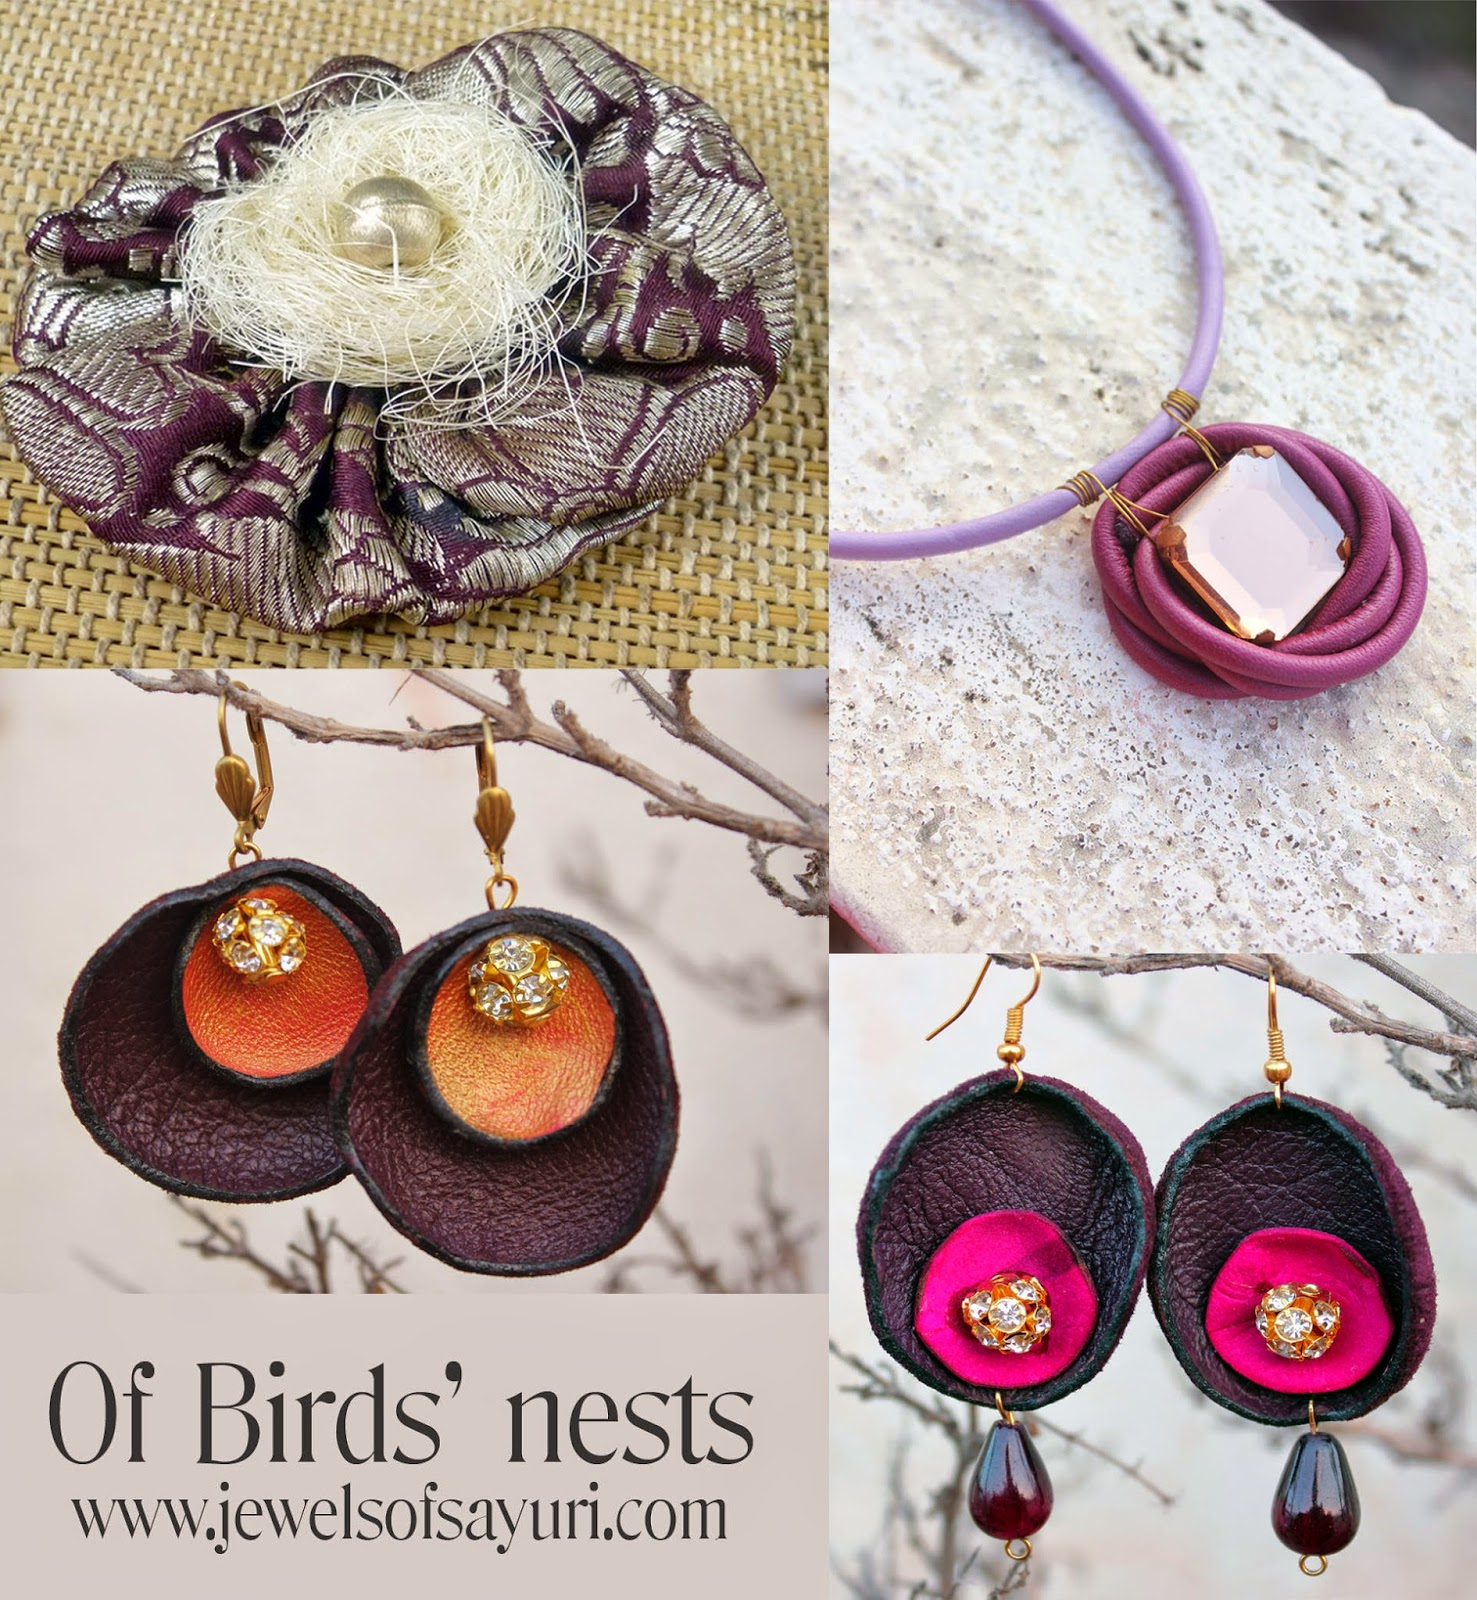 Bird's nest jewelry for mother's day